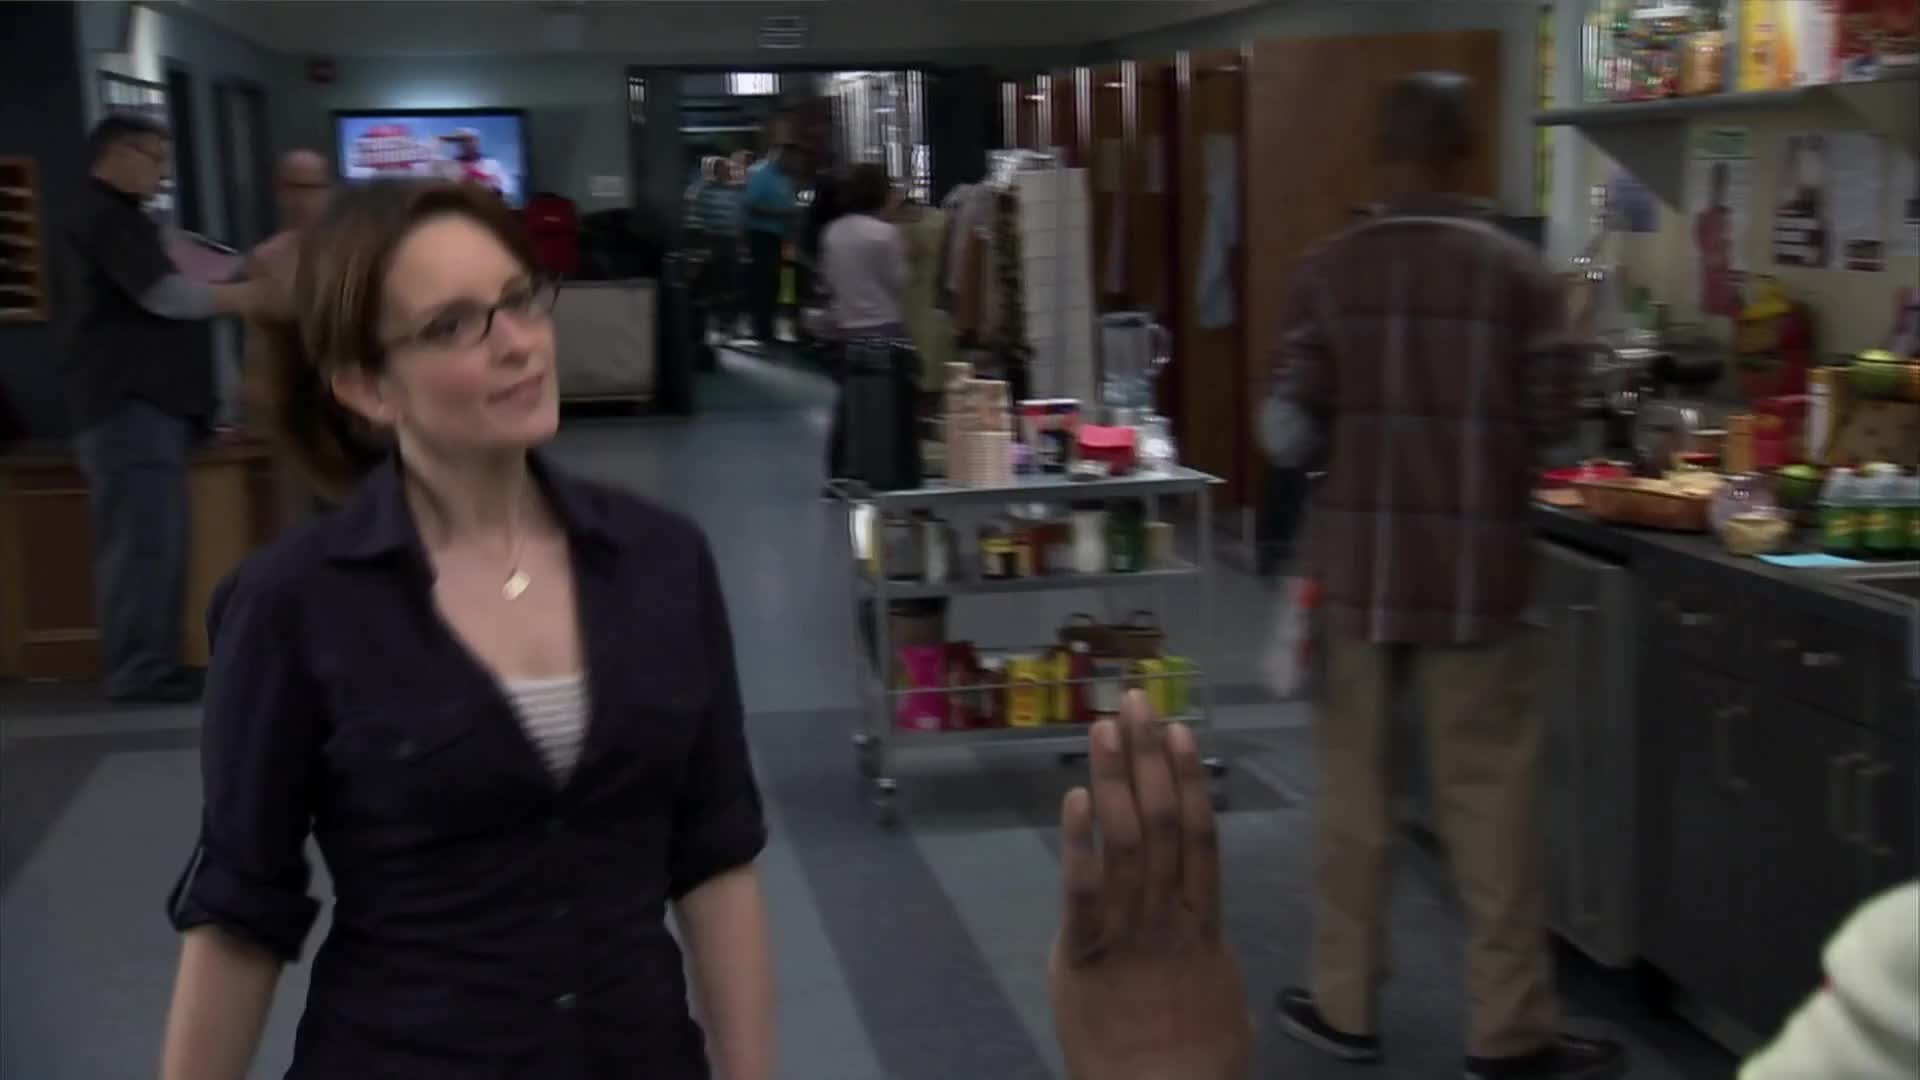 30 ROCK, D'Fwan, Jordan, Queen, S06E20, can't, celebs, come, easy, for, here, in, me, now, of, right, say, tina fey, tituss burgess, You can't come in here right now GIFs